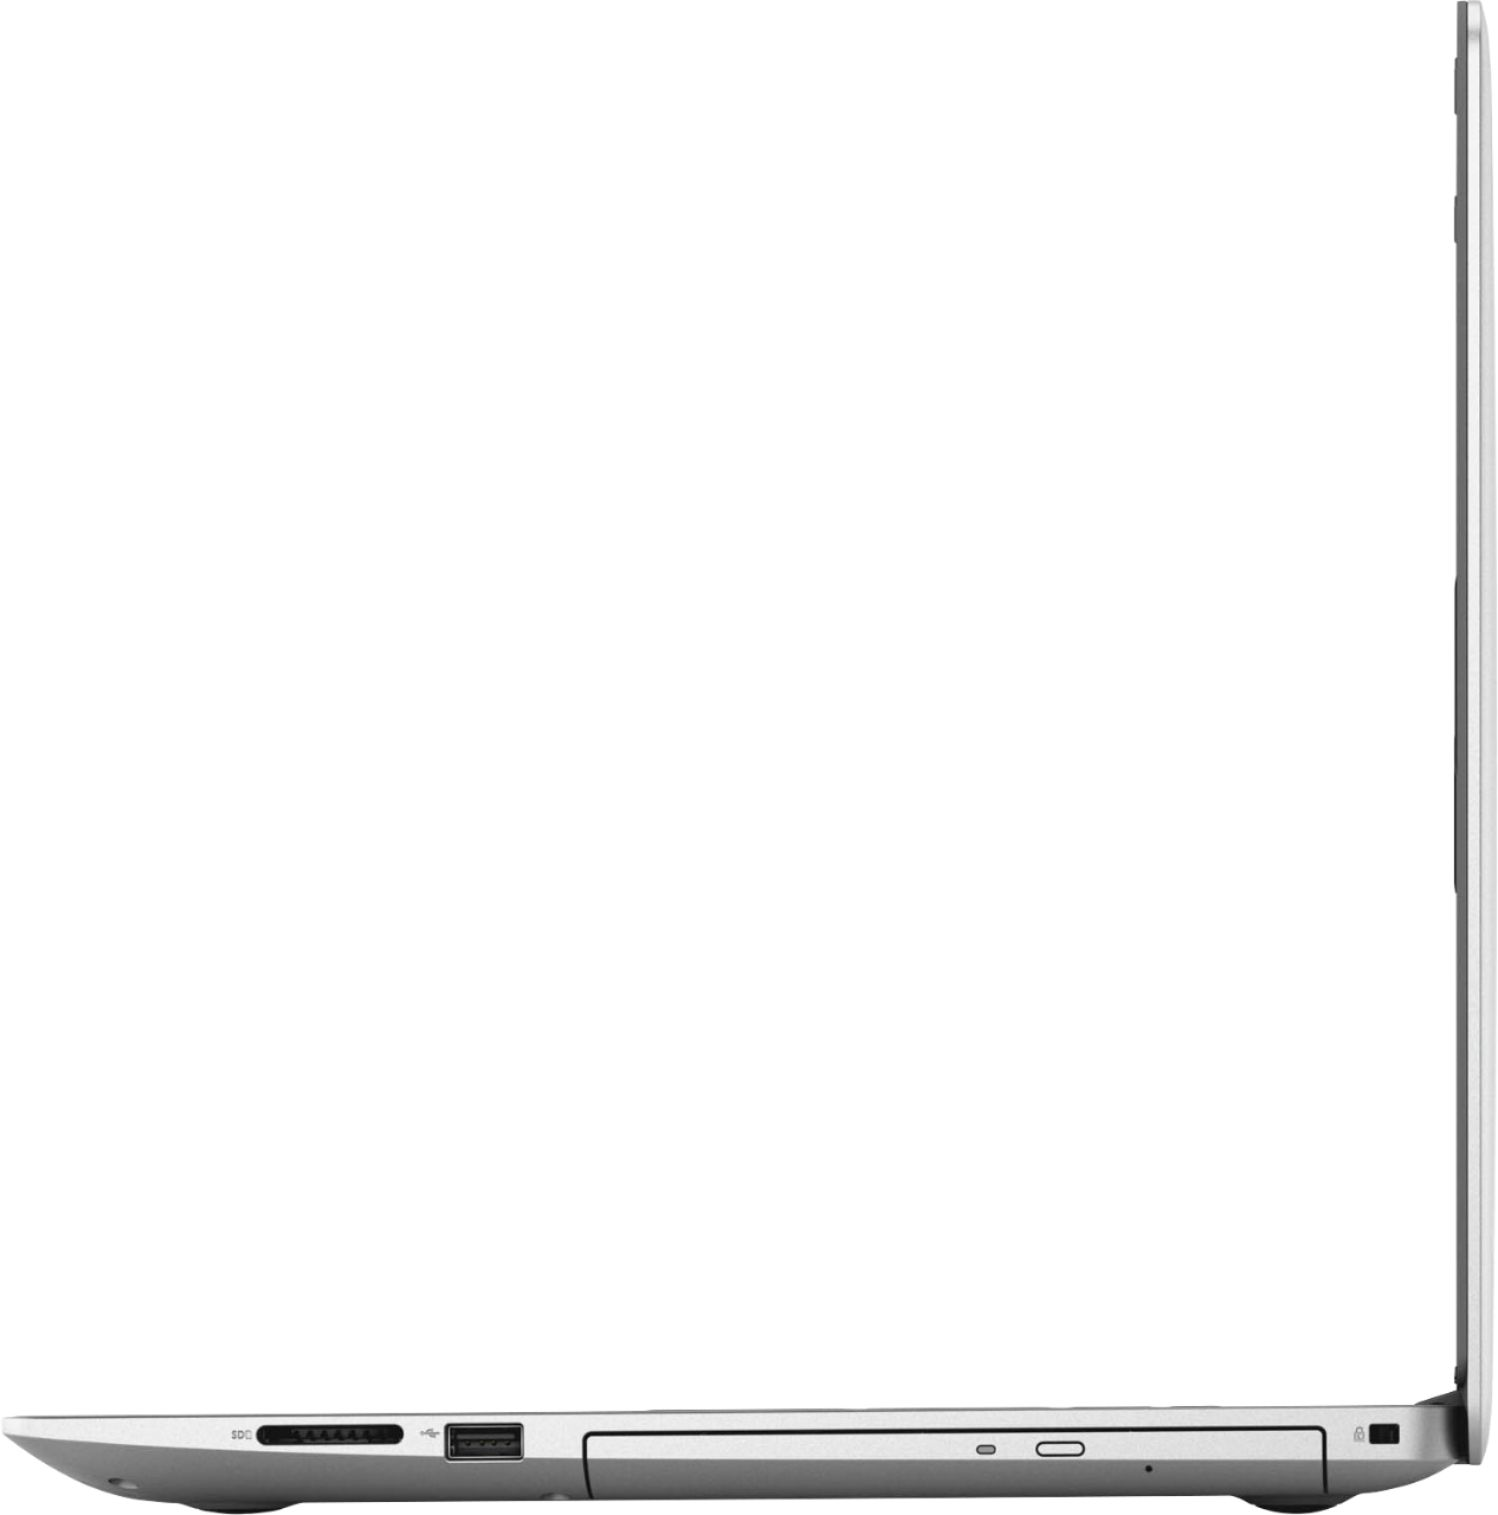 """Alt View Zoom 4. Dell - Geek Squad Certified Refurbished Inspiron 15.6"""" Touch-Screen Laptop - Intel Core i7 - 12GB Memory - 256GB SSD - Silver."""